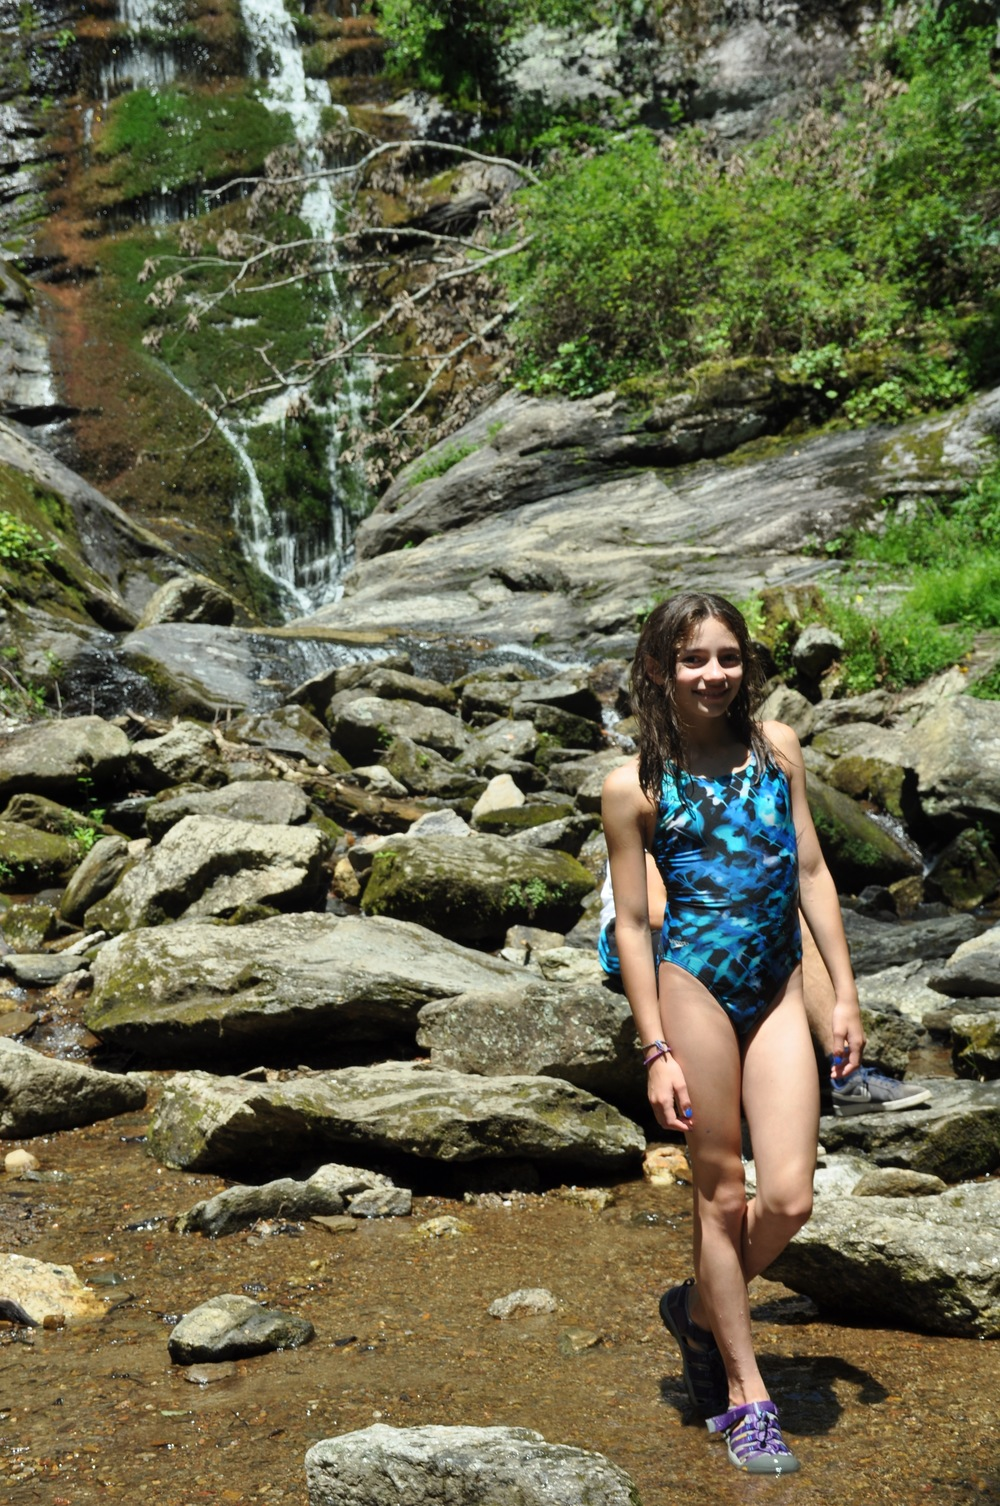 on-sunday-the-senior-campers-went-to-tom-huskins-waterfall-in-marion.jpg